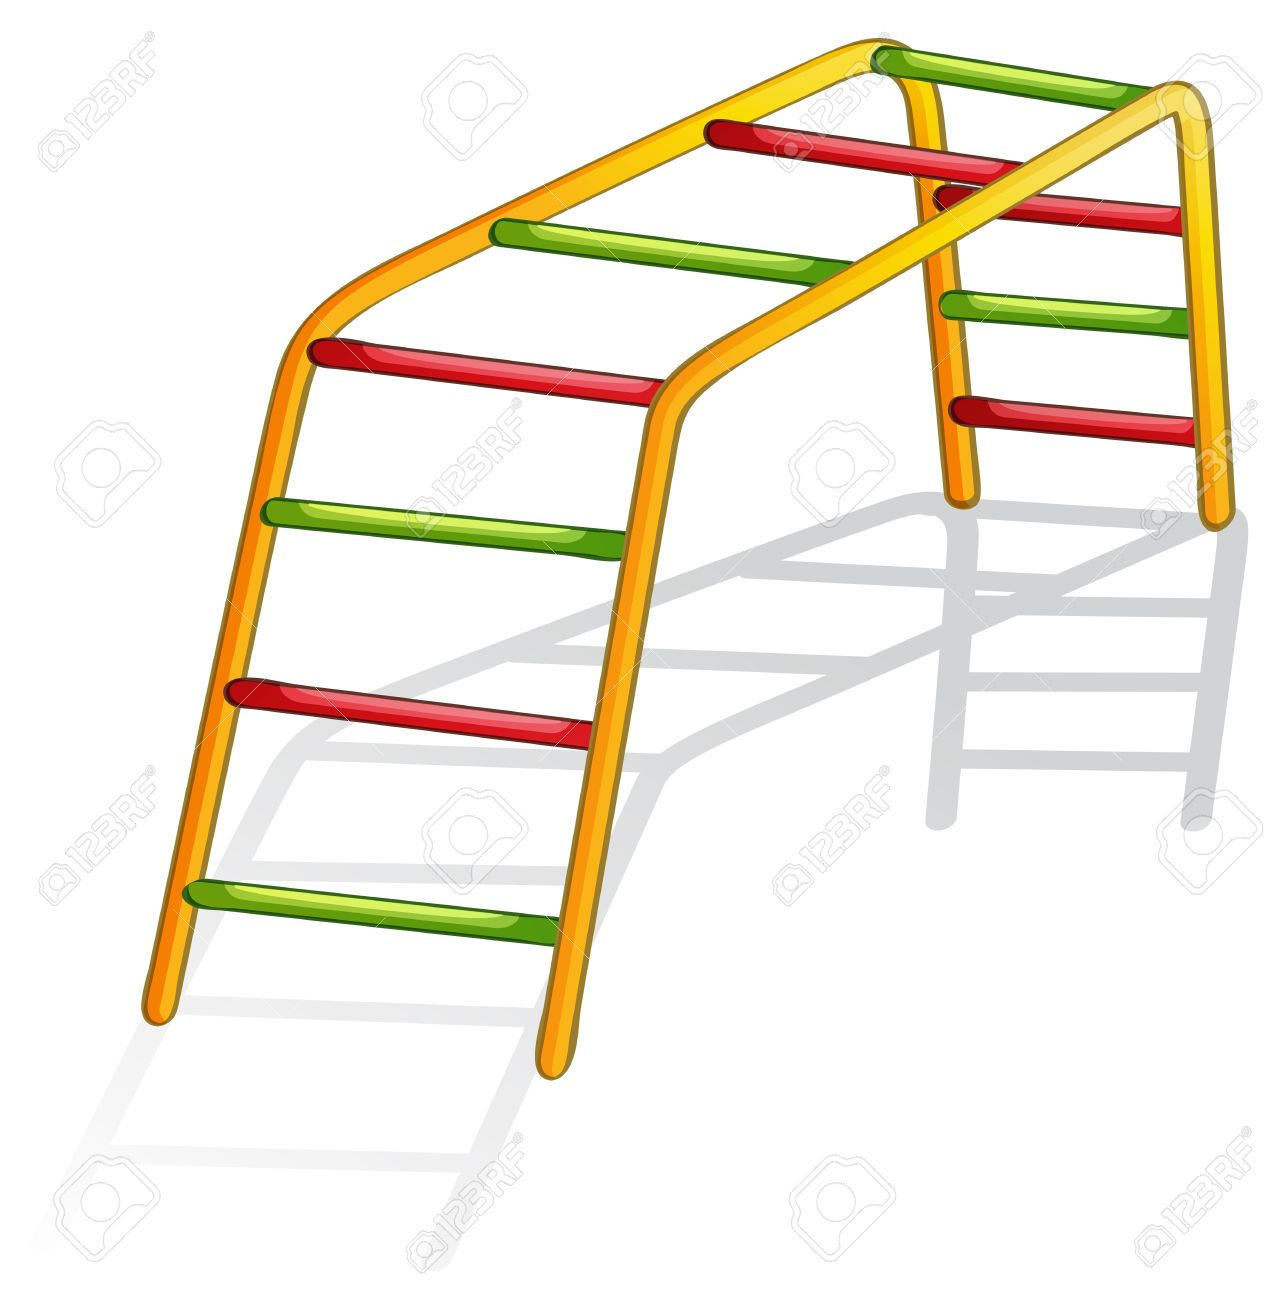 Clipart monkey bars.